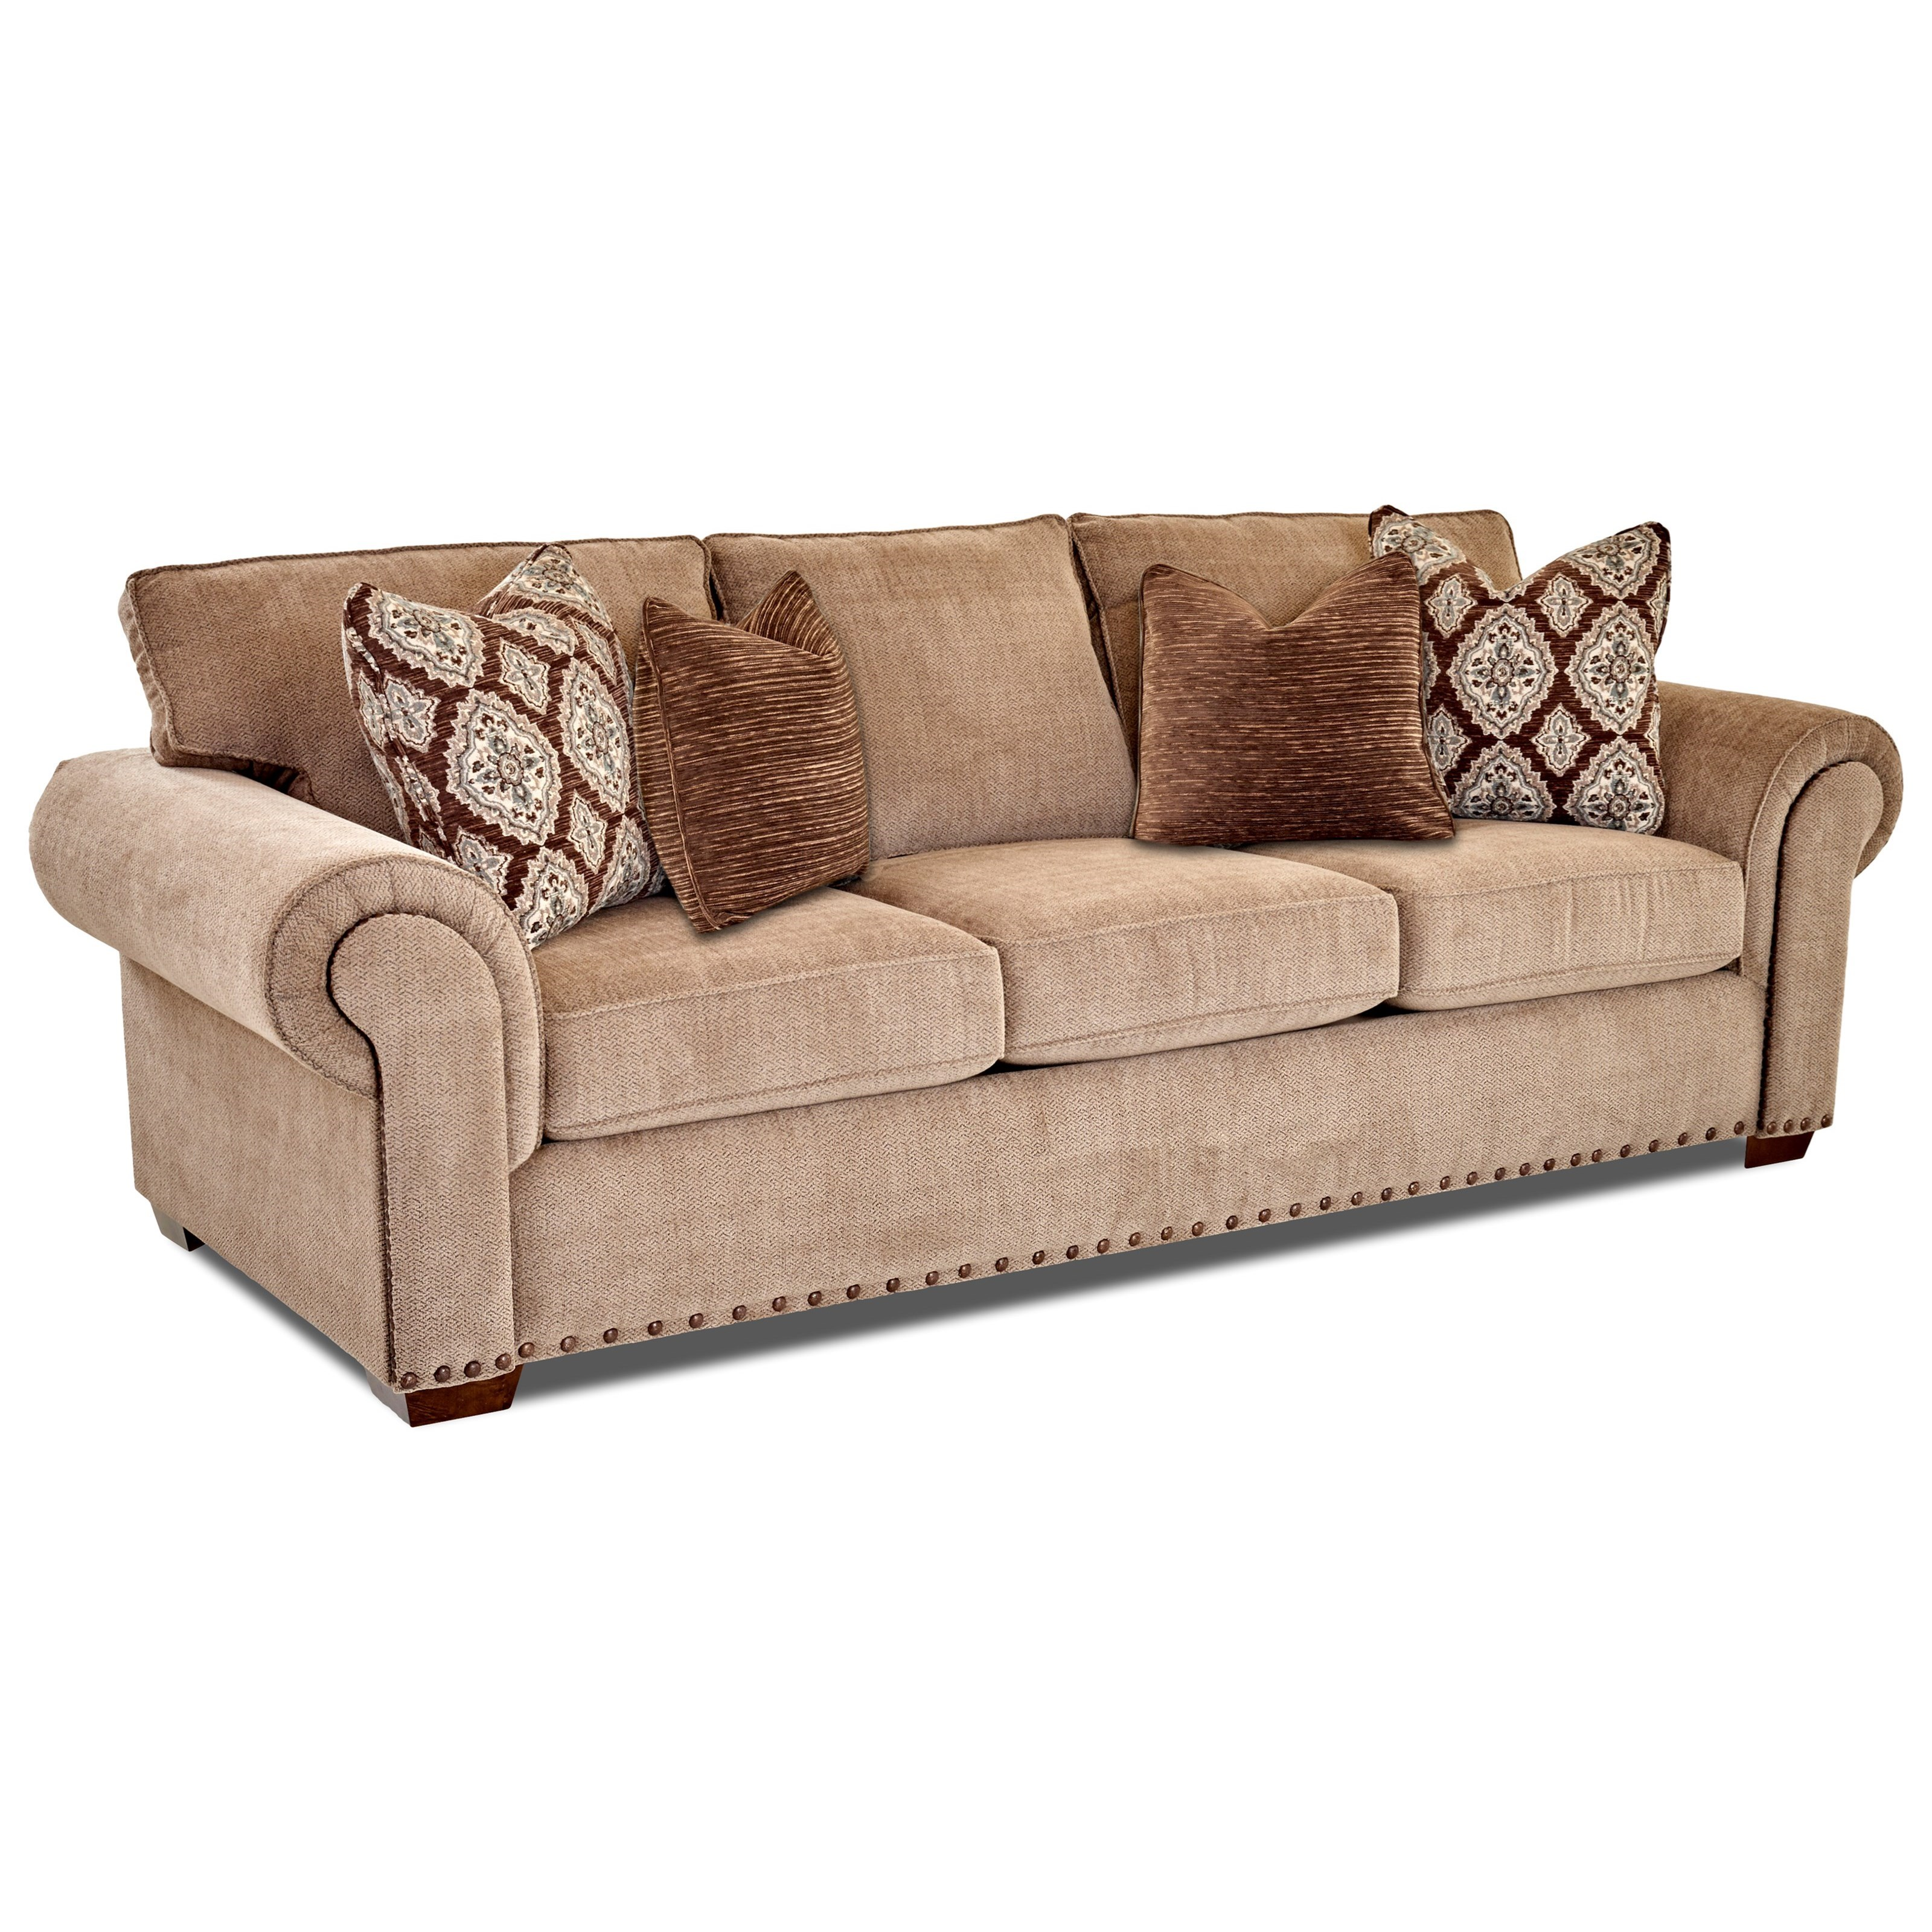 Klaussner Topton Ok70710 S Traditional Sofa With Two Sizes